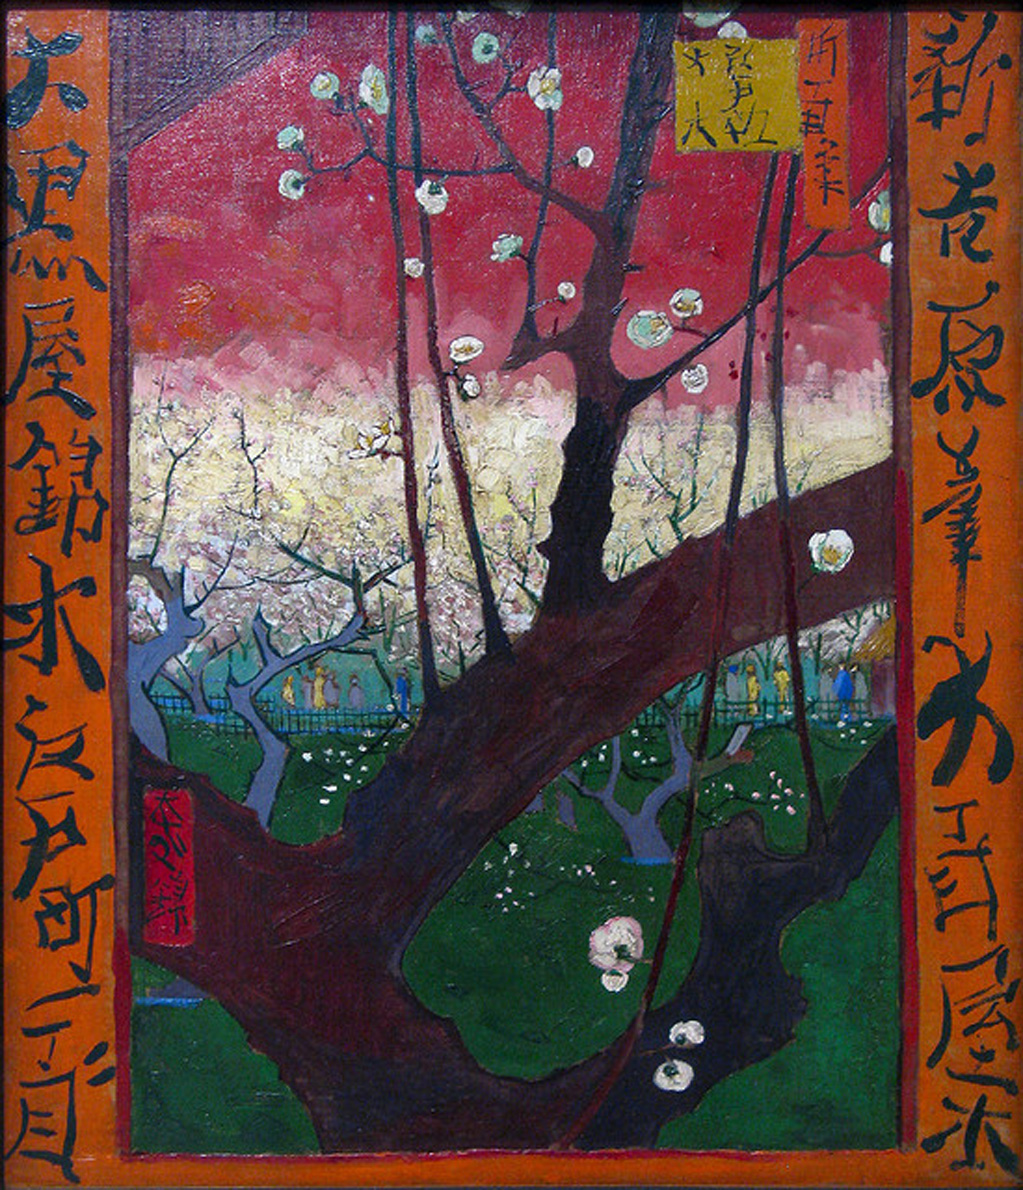 Van Gogh the blooming plumtree (after Hiroshige)